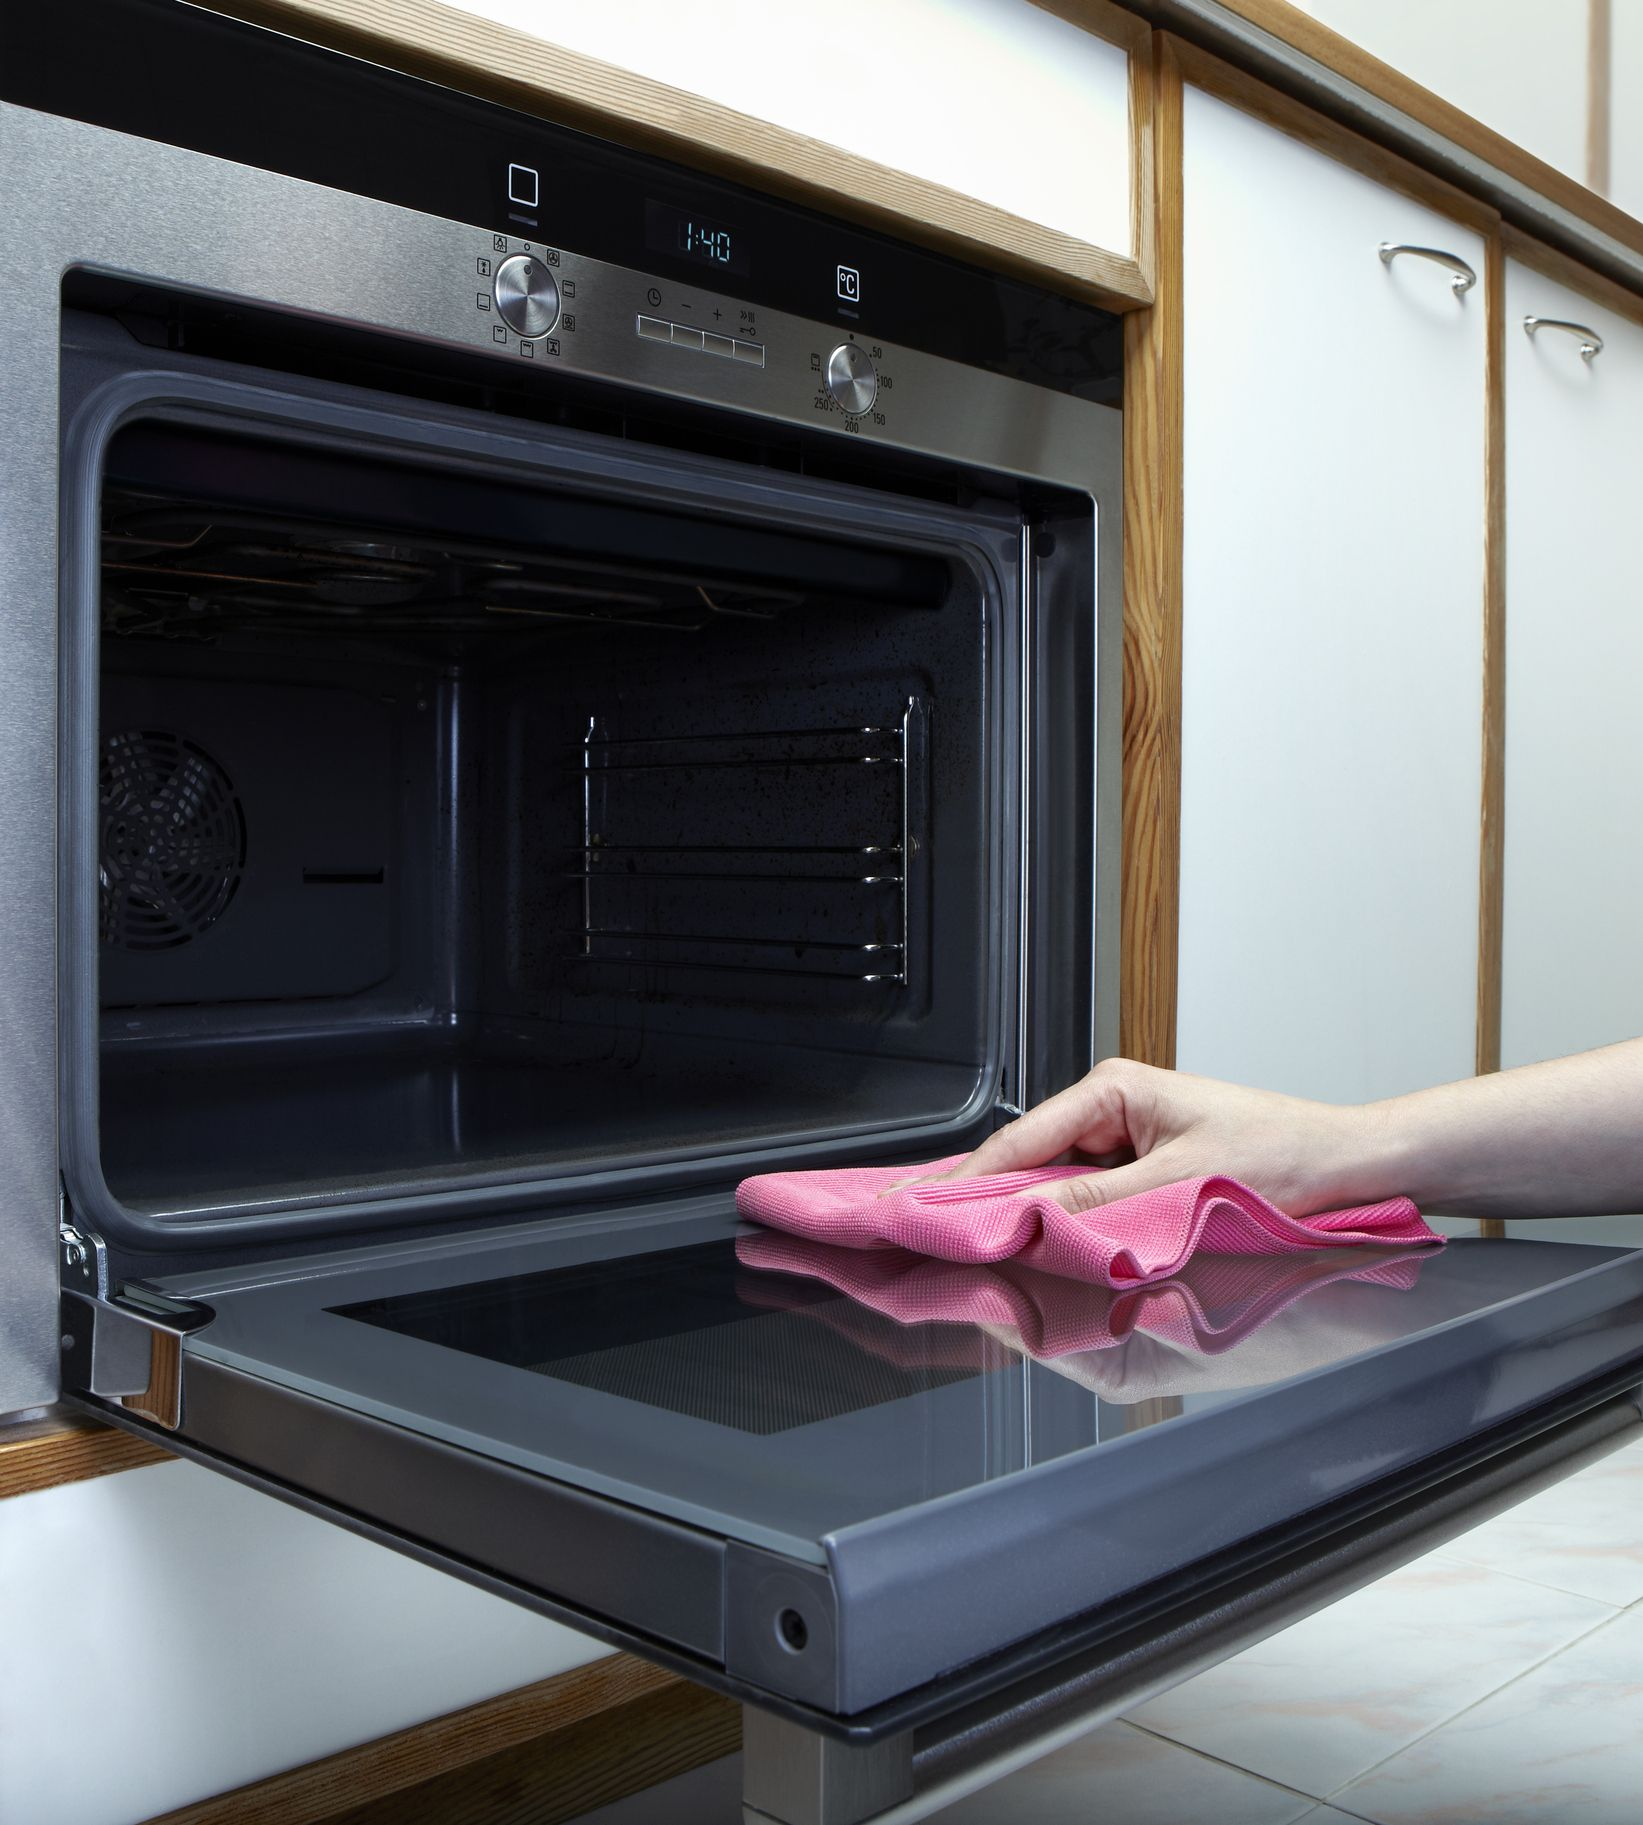 How To Clean An Oven Guide Best Way By Professional Cleaners